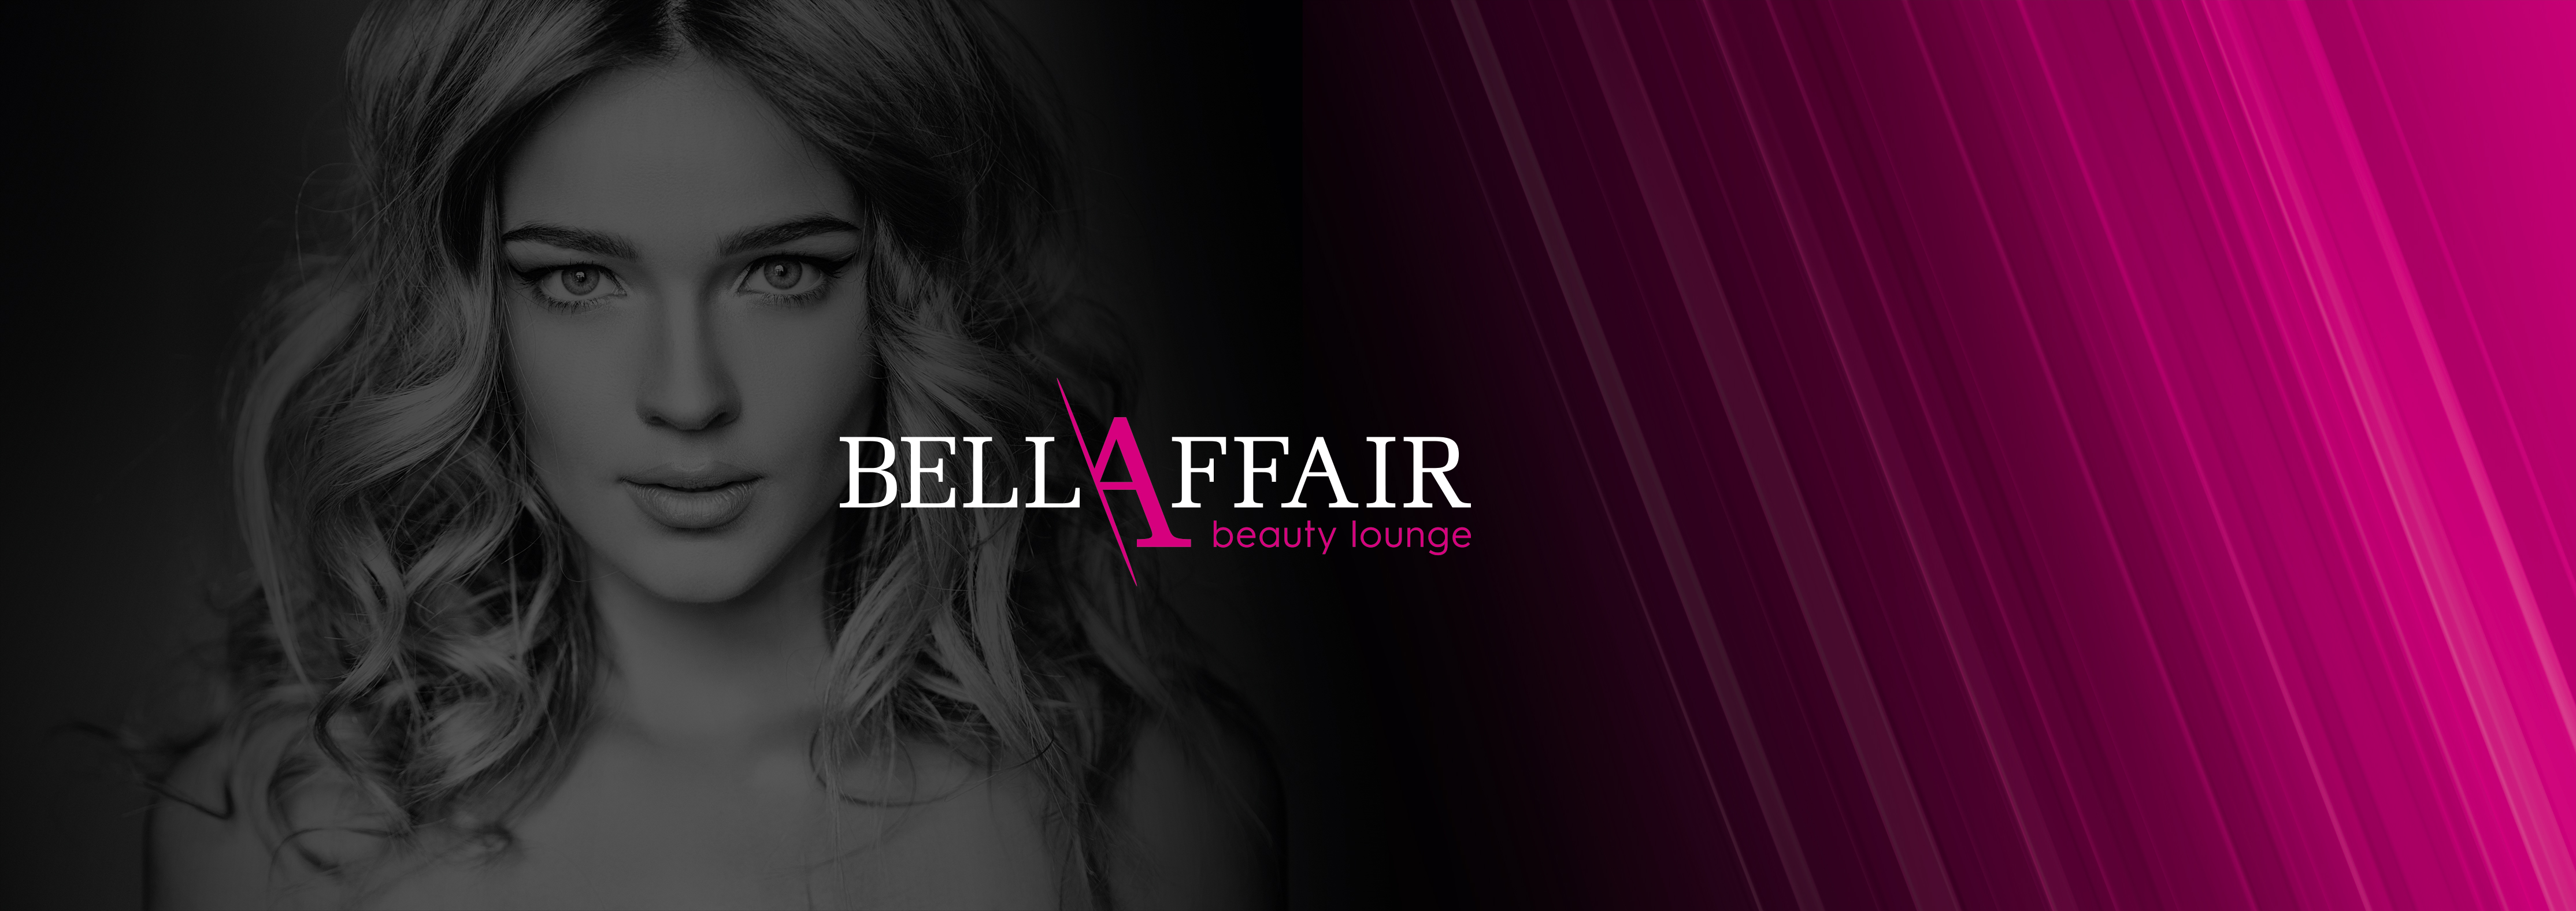 Hintergrundbild BellAffair Beauty Lounge